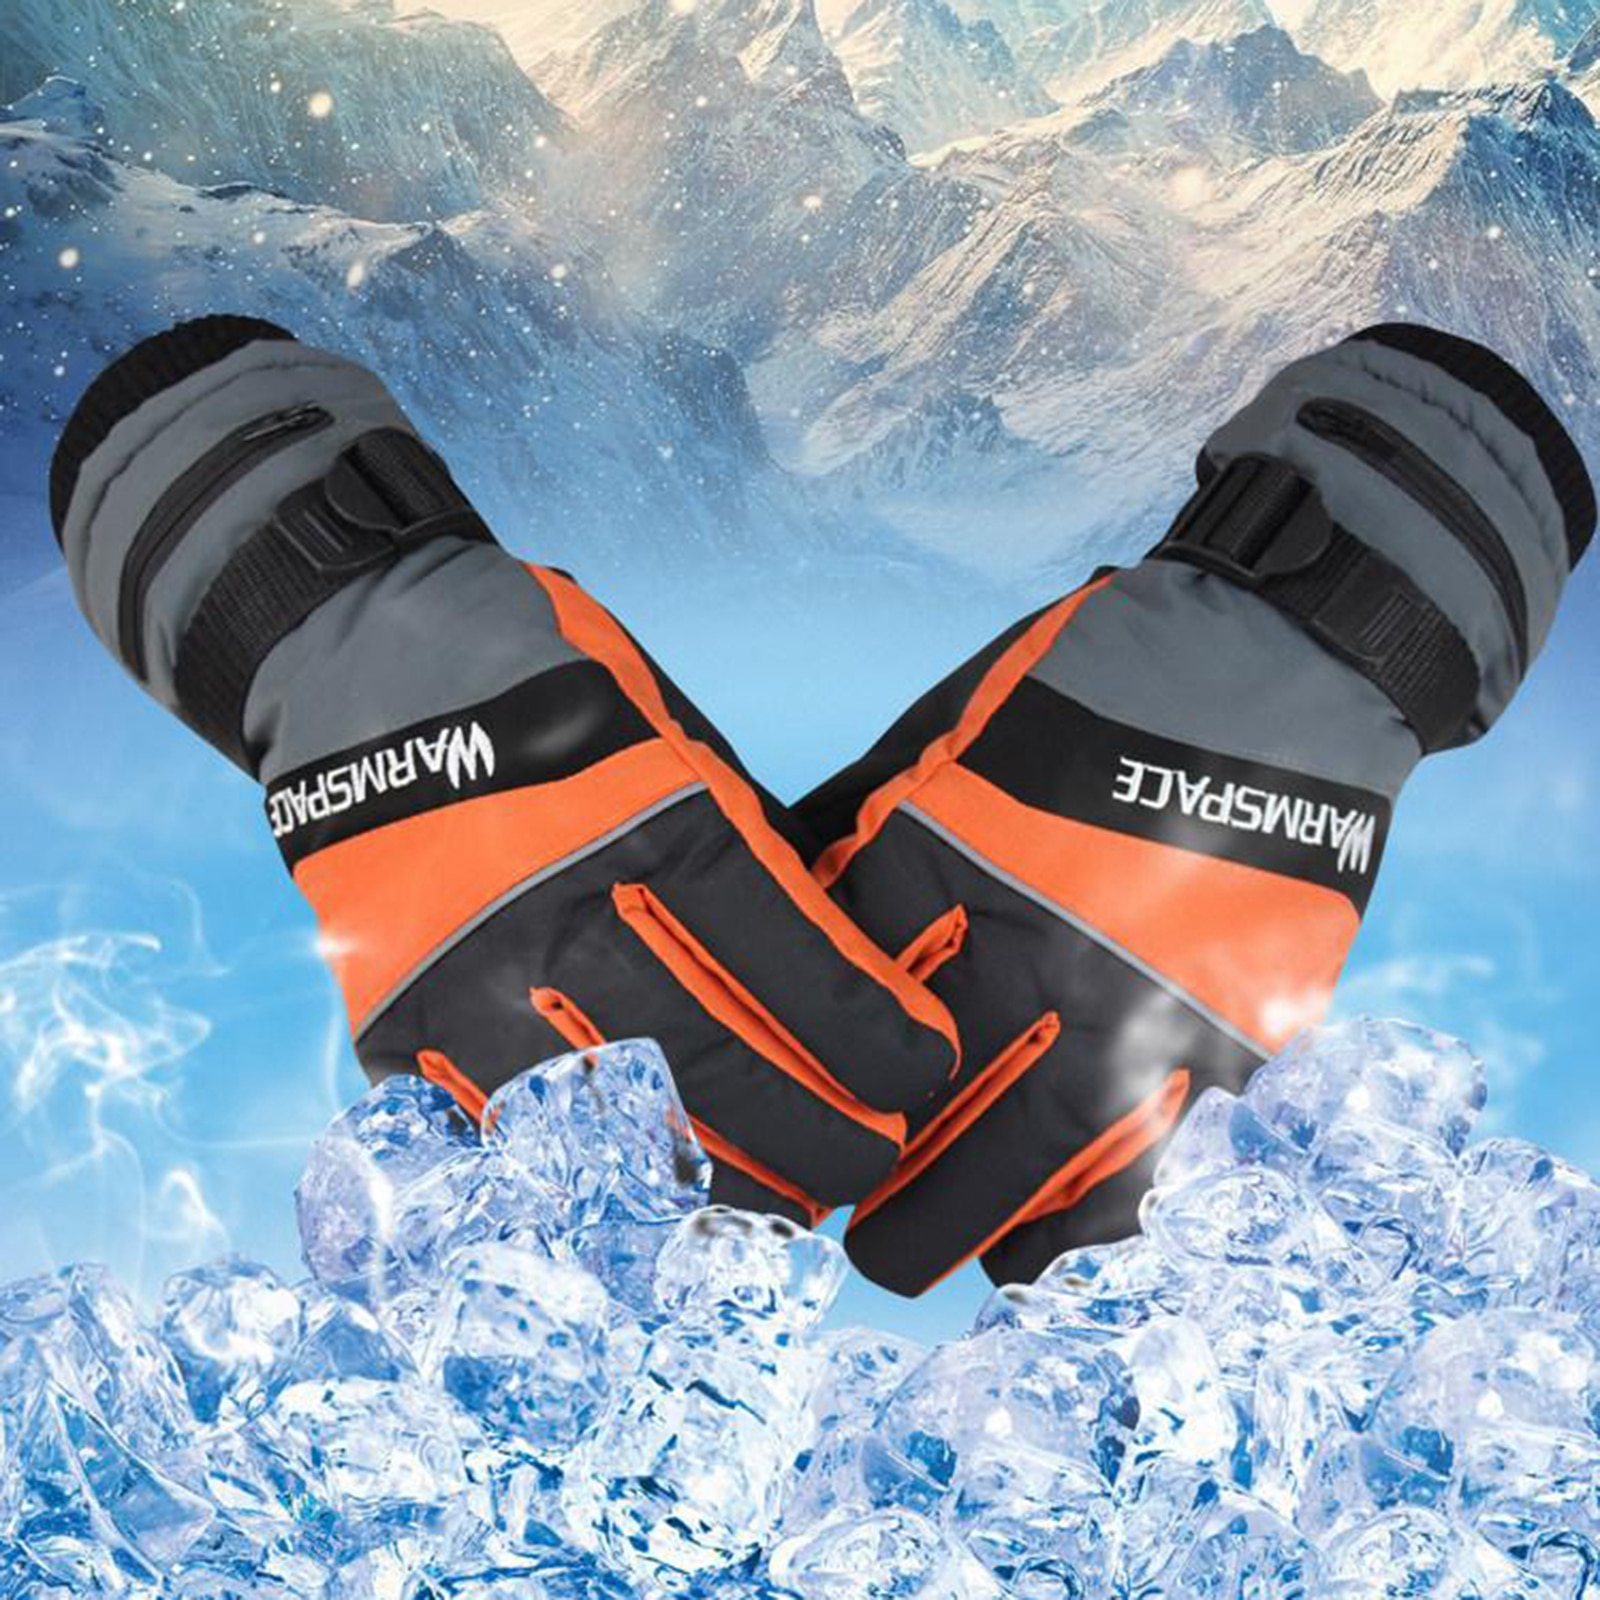 Electric Heated Gloves Rechargeable Batteries Waterproof Thermal Hand Warmer Warming Glove for Skiing, Snowboard, Motorcycle enlarge